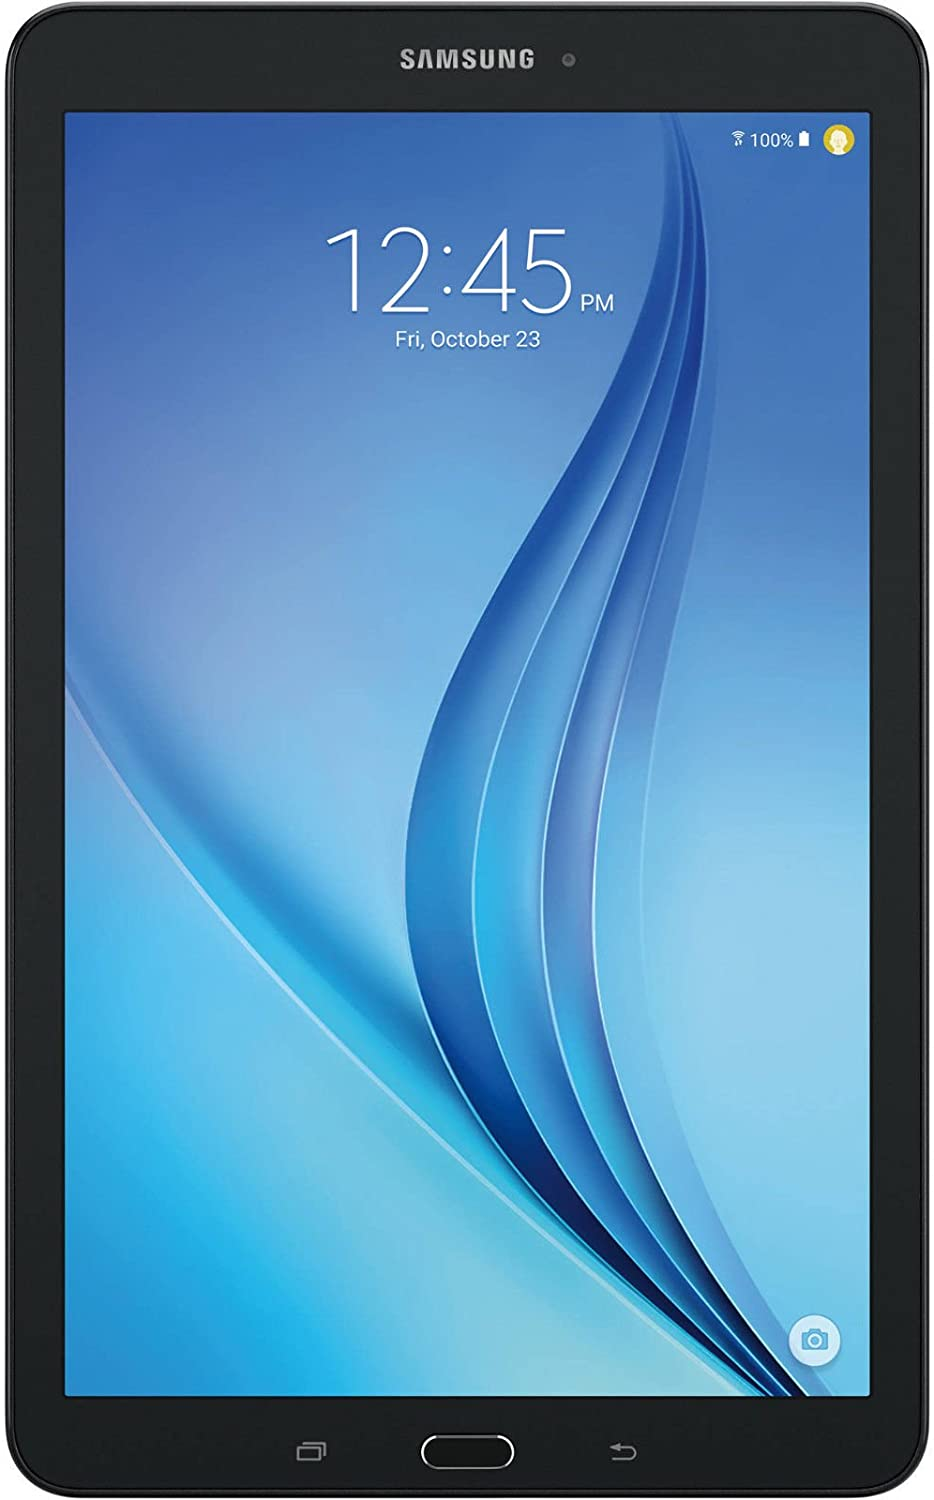 "Samsung SM-T377A Galaxy Tab E 8"" HD Touchscreen Quad-Core Tablet (Quad-Core CPU, 1.5GB memory, 16GB Storage, Bluetooth, 4G LTE AT&T, Android)"